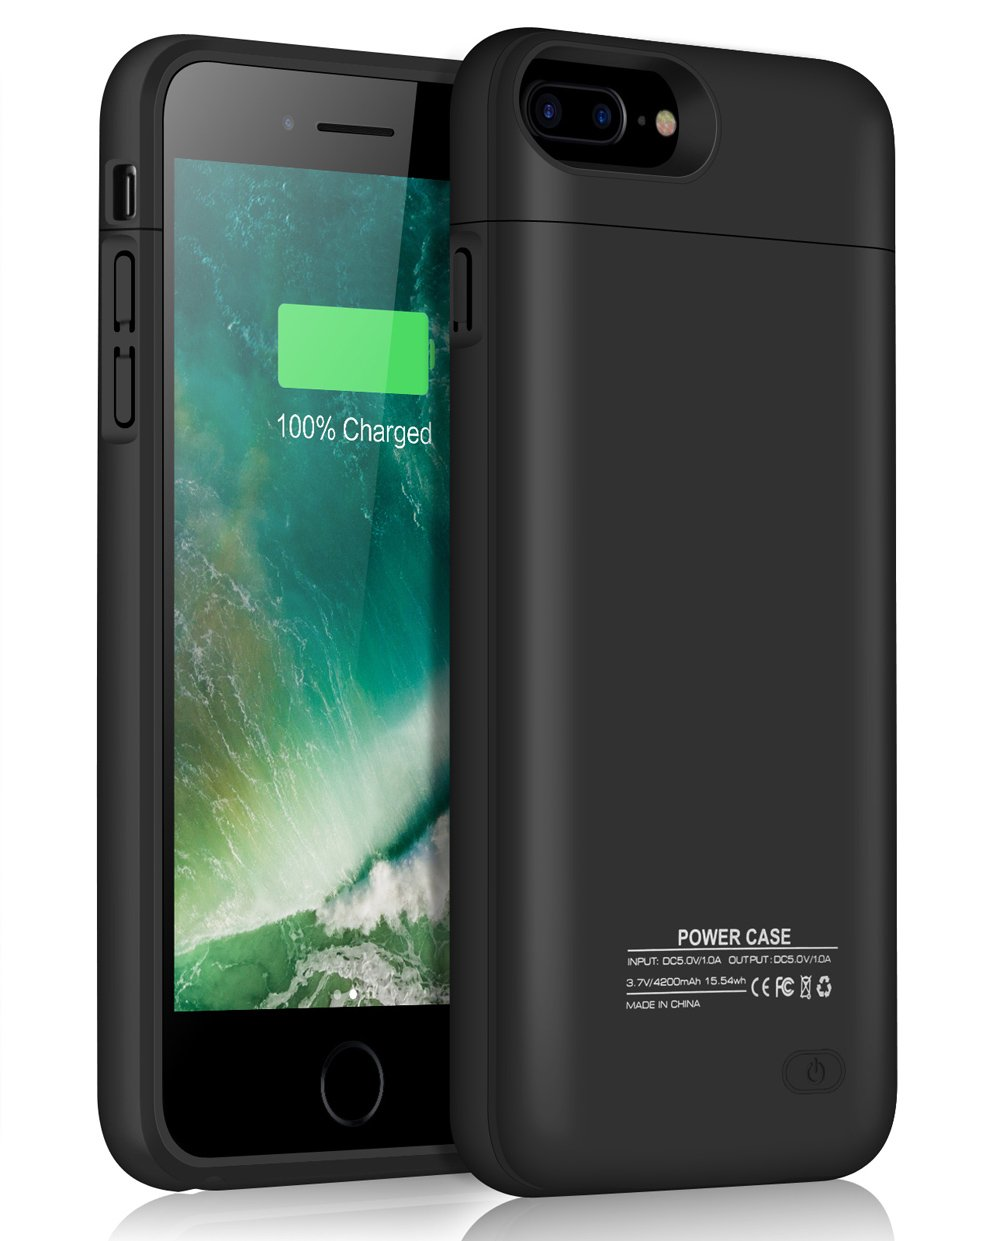 JUBOTY Battery Case for iPhone 7 Plus 8 Plus, 4200mAh Magnetic Slim Rechargeable Portable Charging Case for iPhone 8 Plus/7 Plus Juice Power Bank Battery Charger Case(Black)